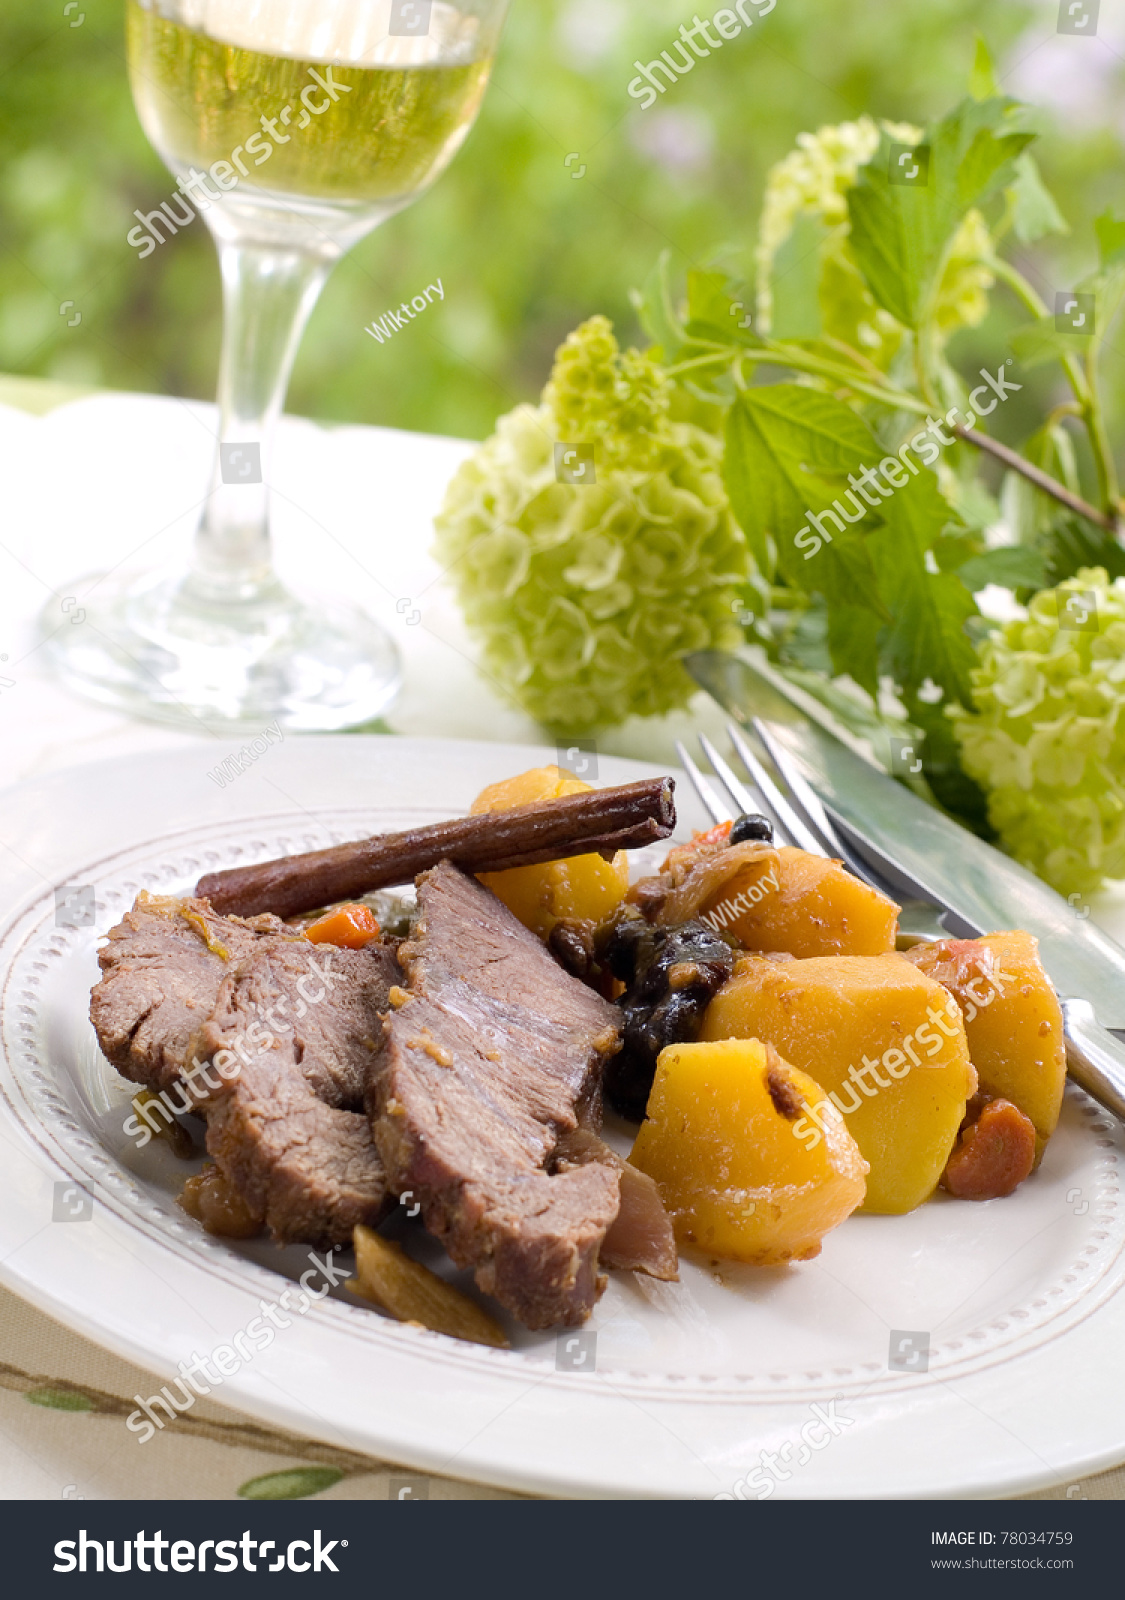 how to cook a beef roast with potatoes and carrots